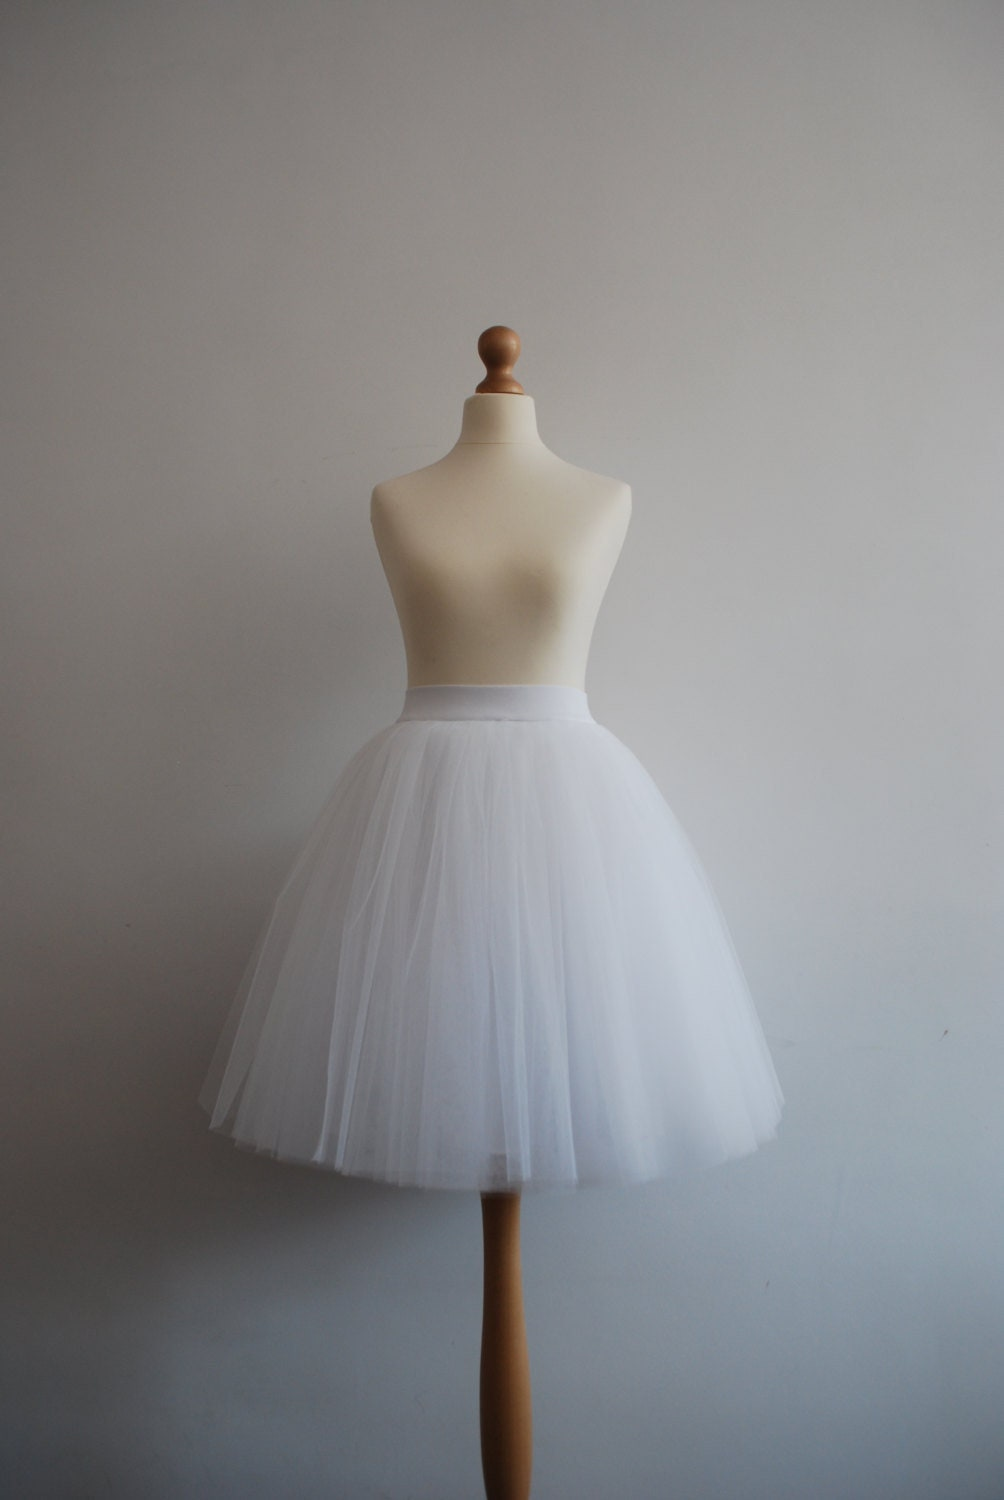 White Swan Ladies Tulle Skirt Adult Tutu Skirt Off Etsy